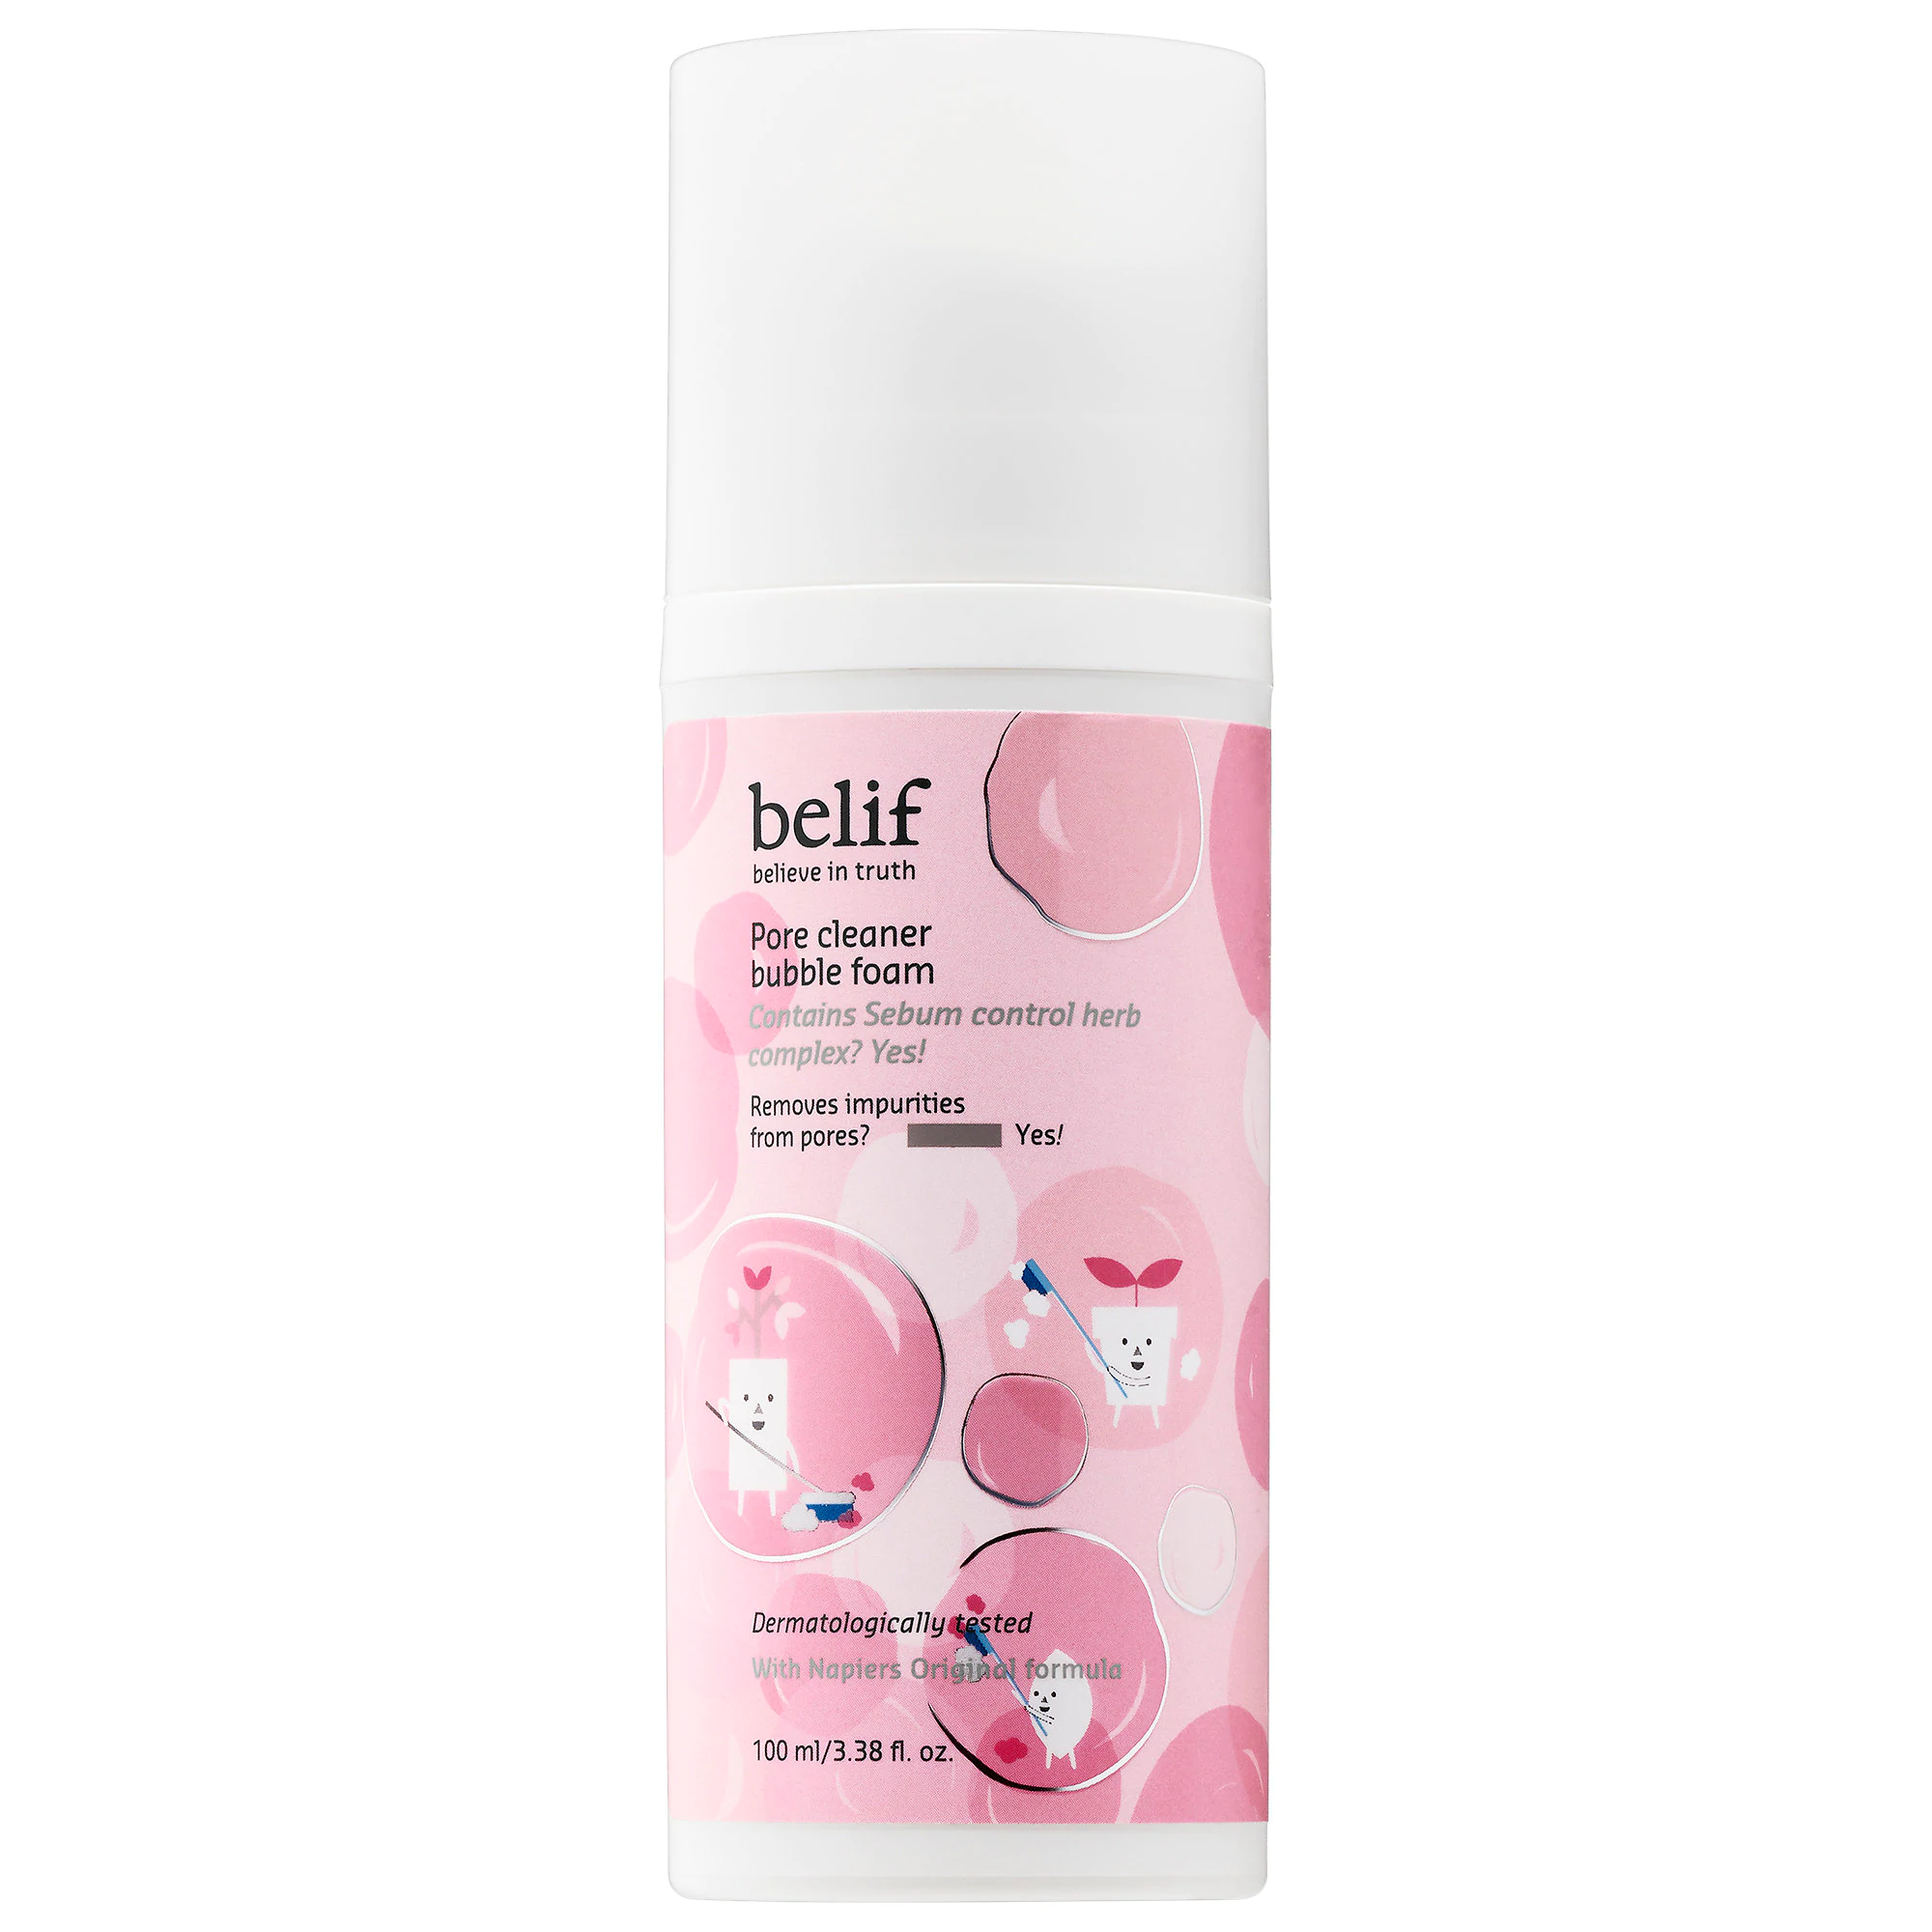 Belif-Pore Cleaner Bubble Foam